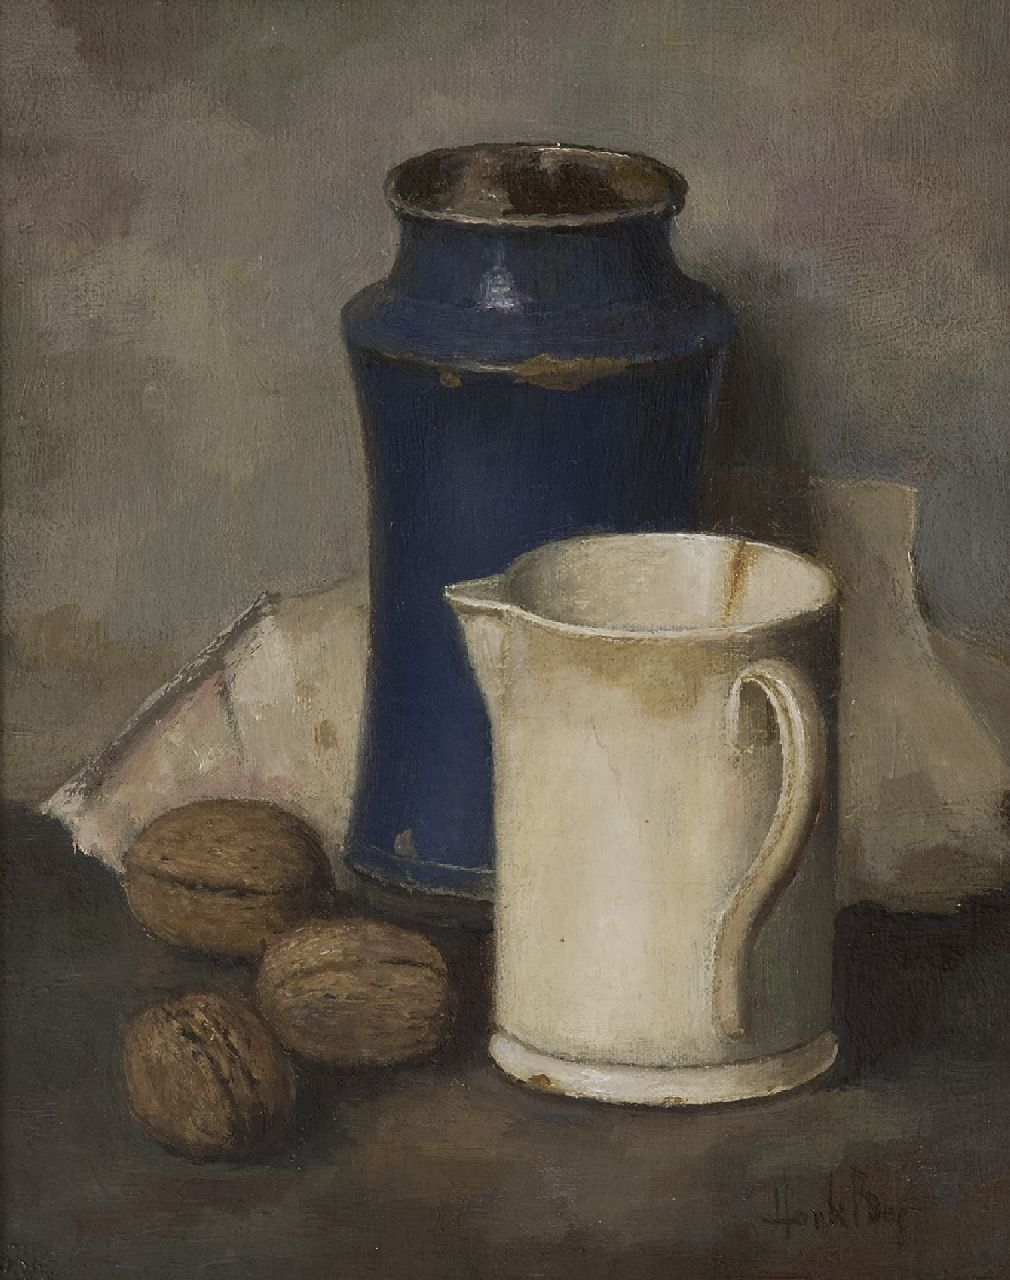 Bos H.  | Hendrik 'Henk' Bos | Paintings offered for sale | A still life with pottery and walnuts, oil on canvas 30.3 x 24.5 cm, signed l.r.